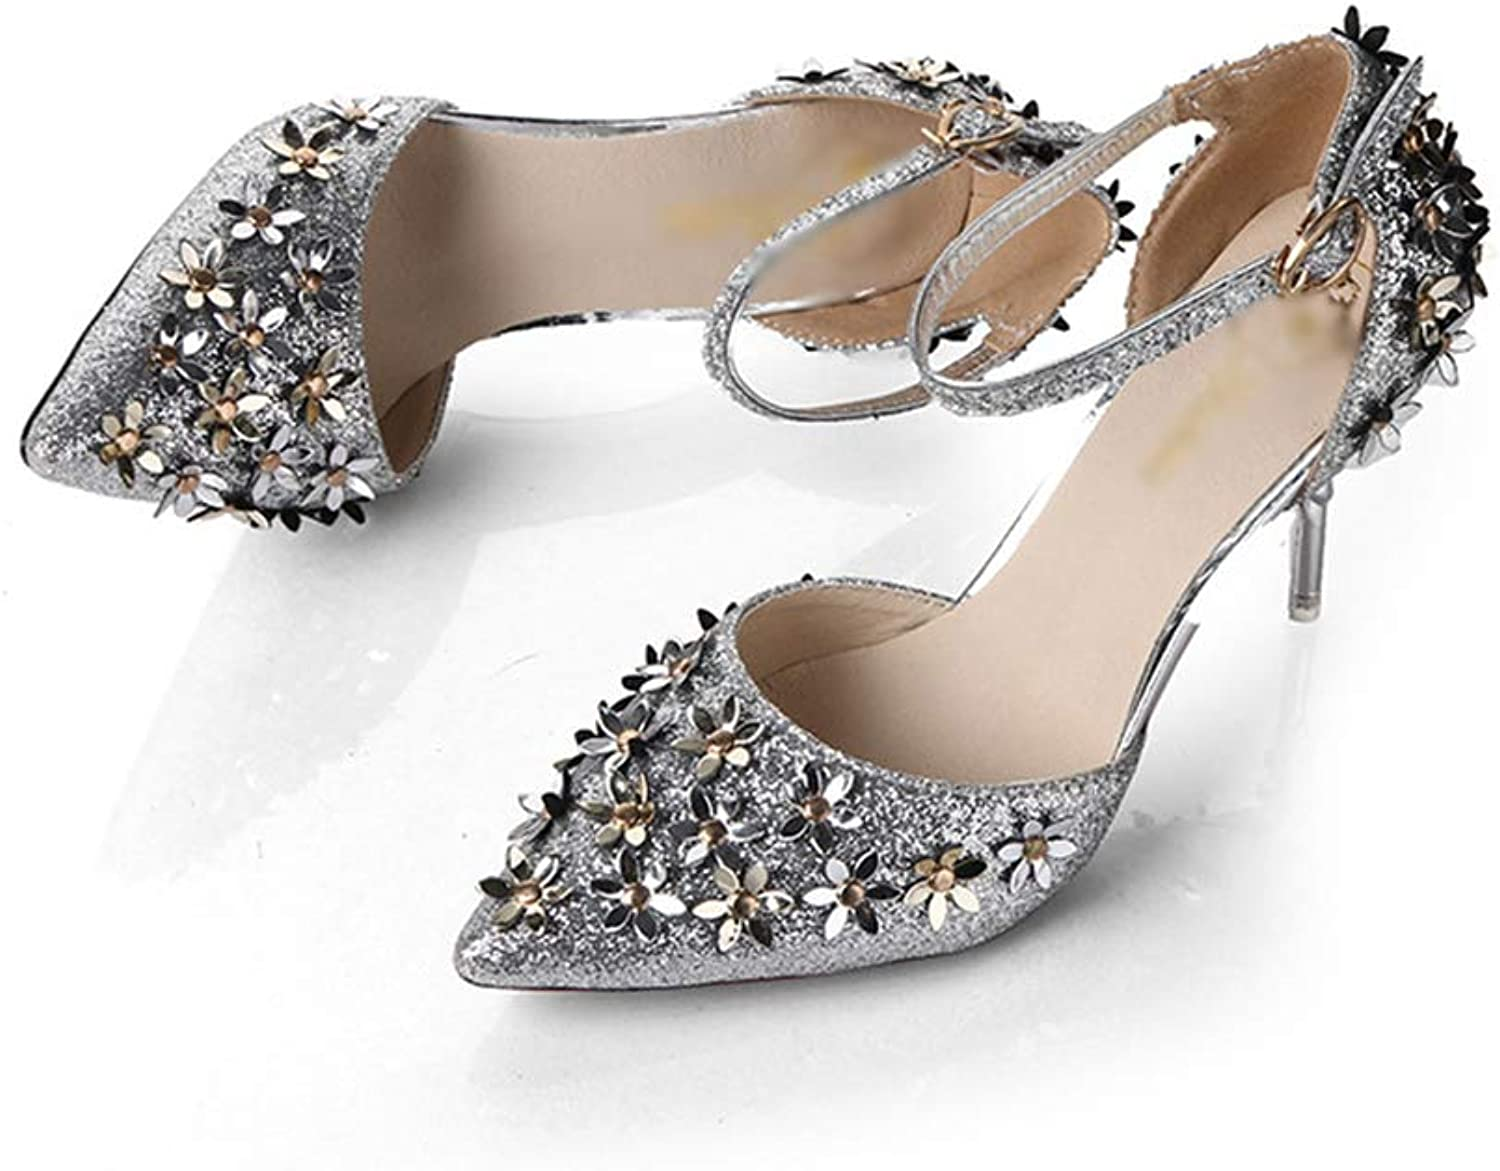 Women's Pumps,Sequin Flower Pointed-Toe Ankle Strap gold Silver Party shoes